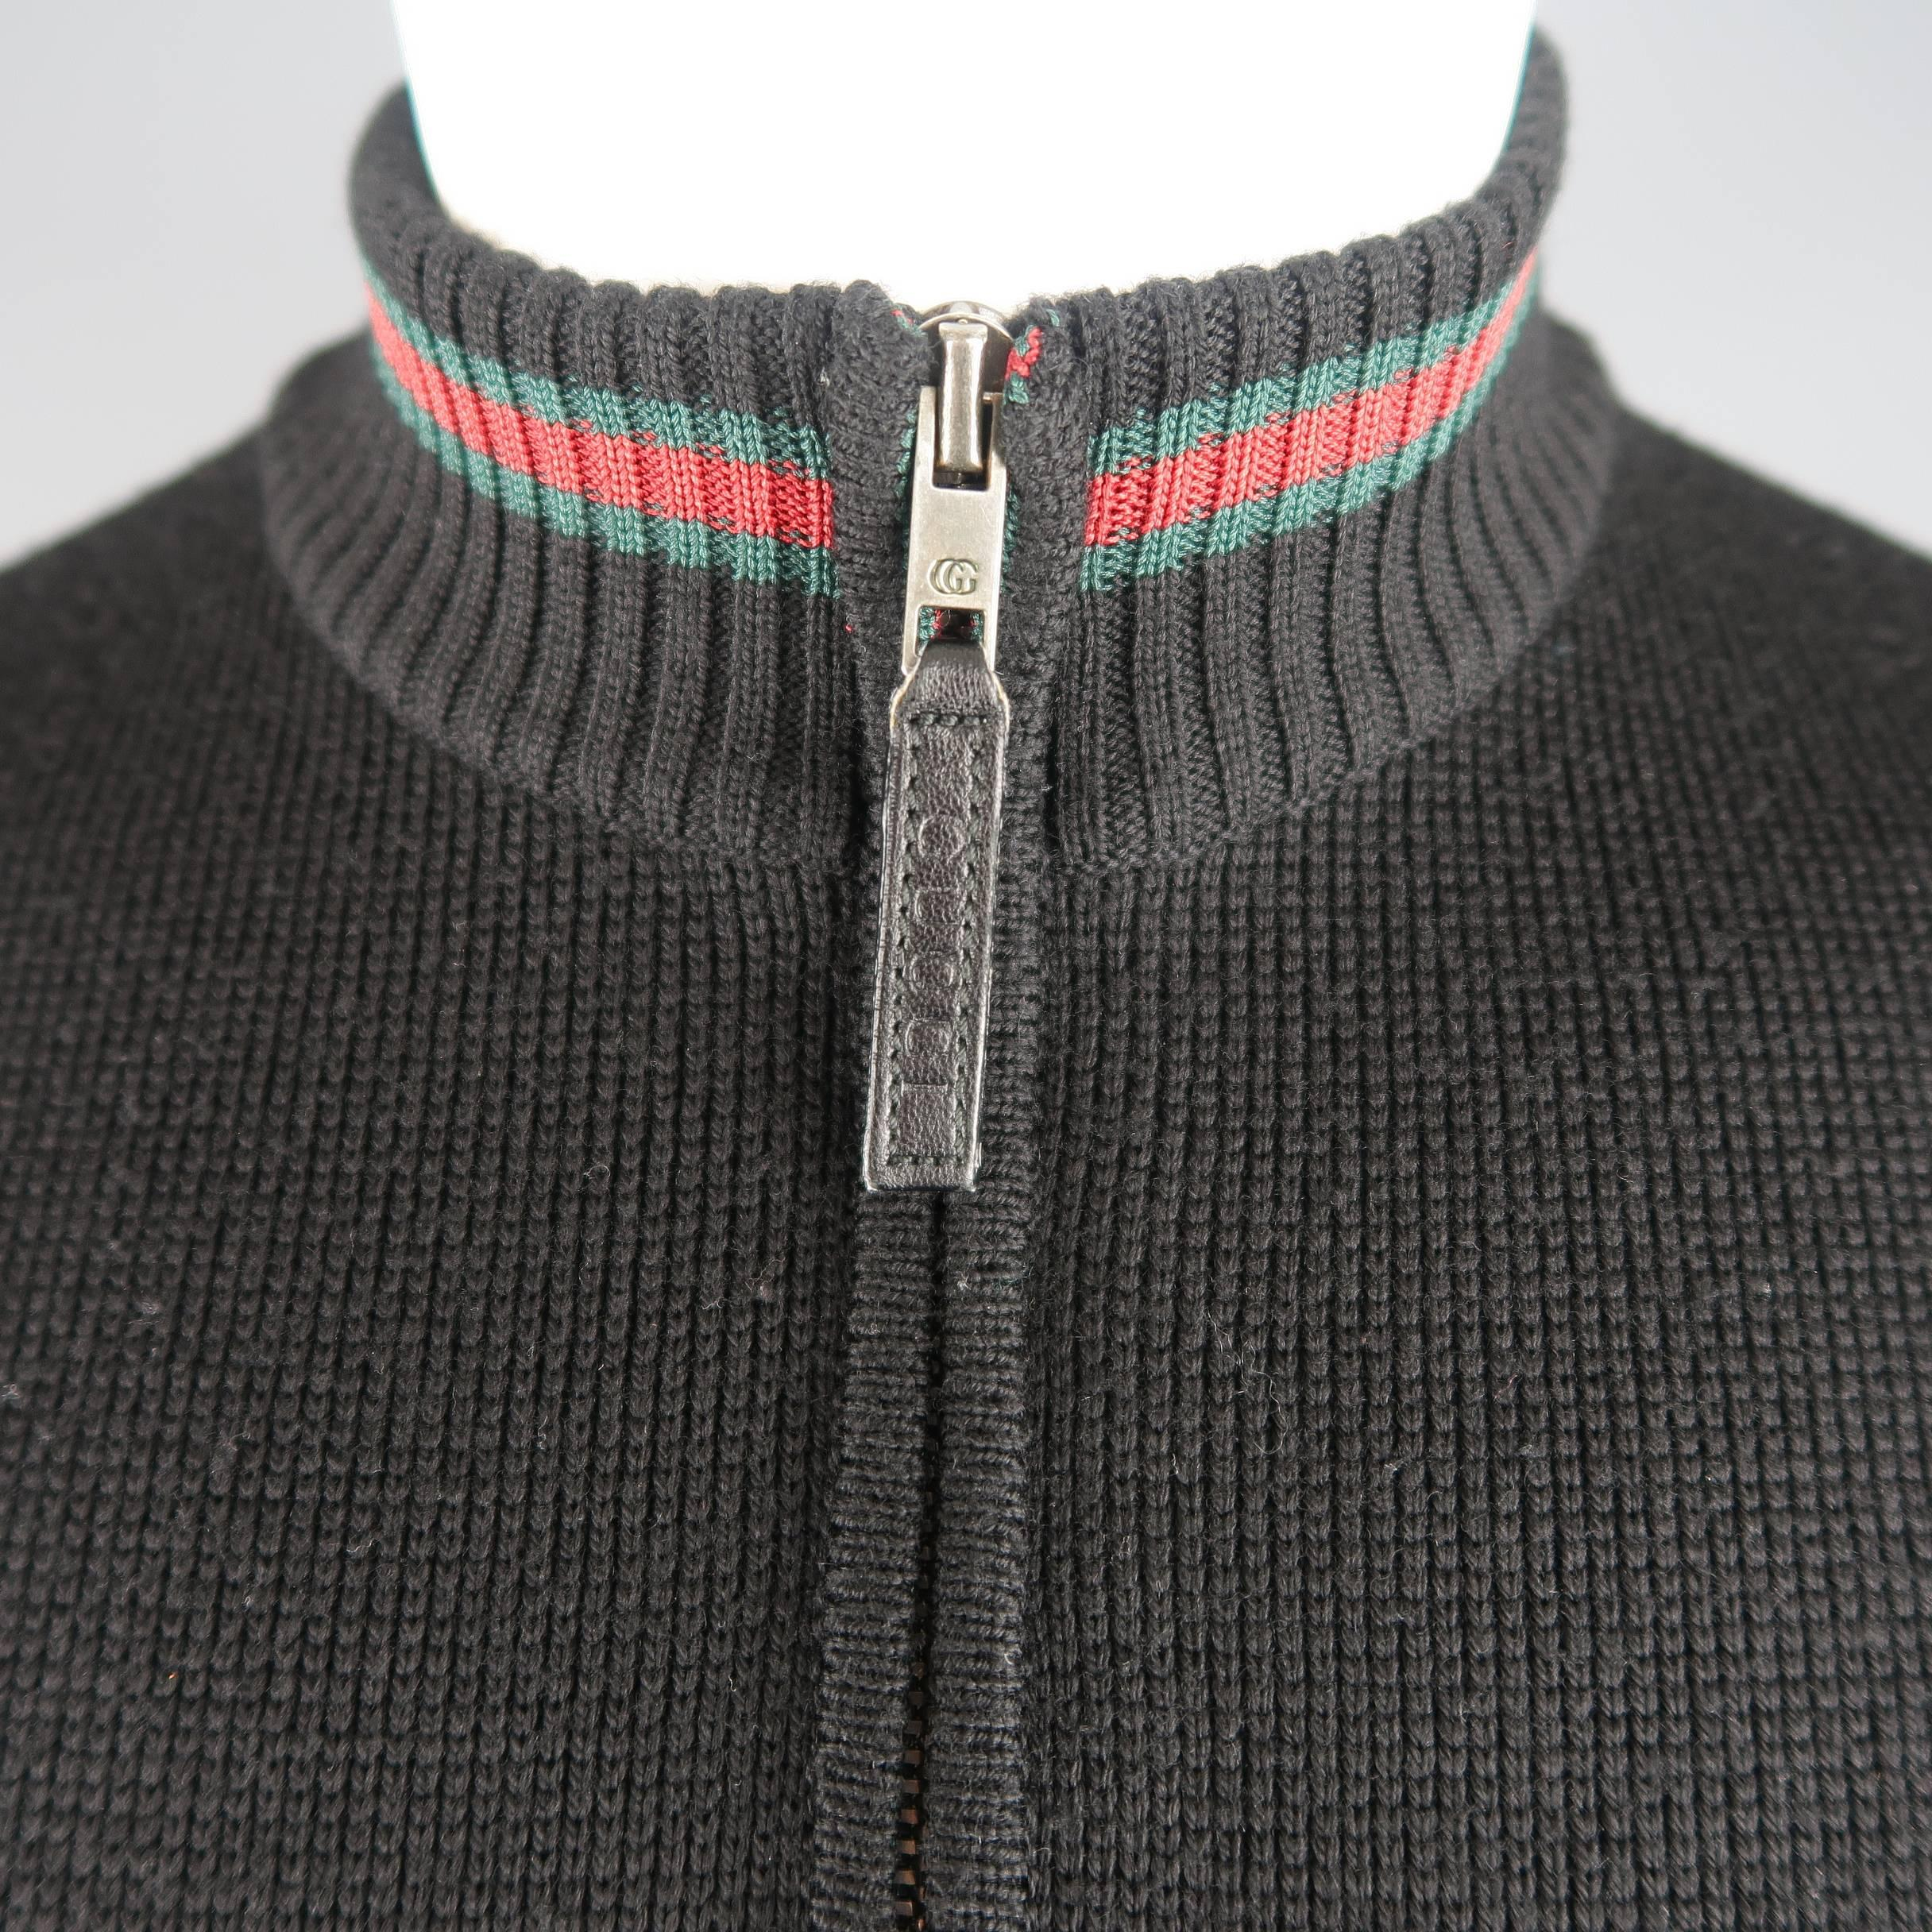 5f98a2f1a Gucci Men's Black Wool Red and Green Stripe Zip Cardigan at 1stdibs